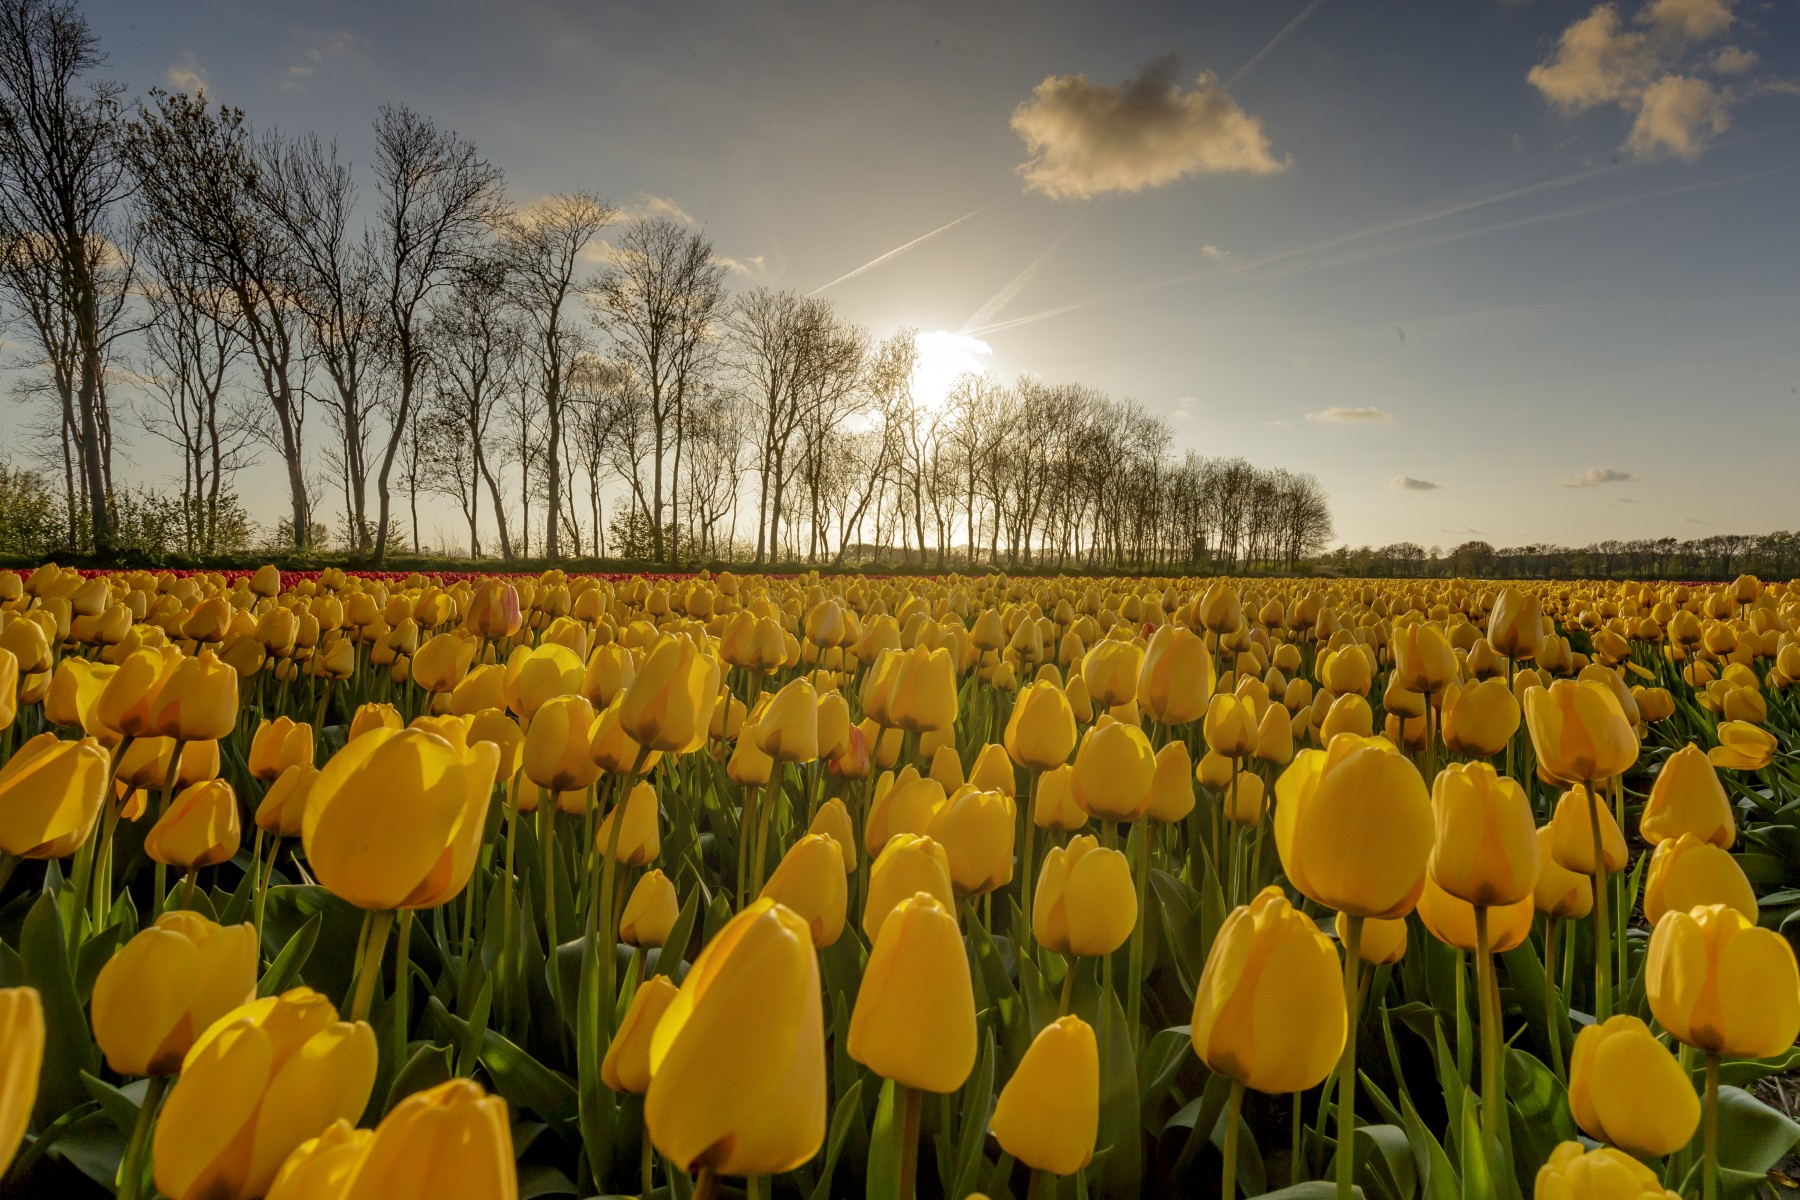 Booking.com invites you to wake up in a field of Dutch tulips